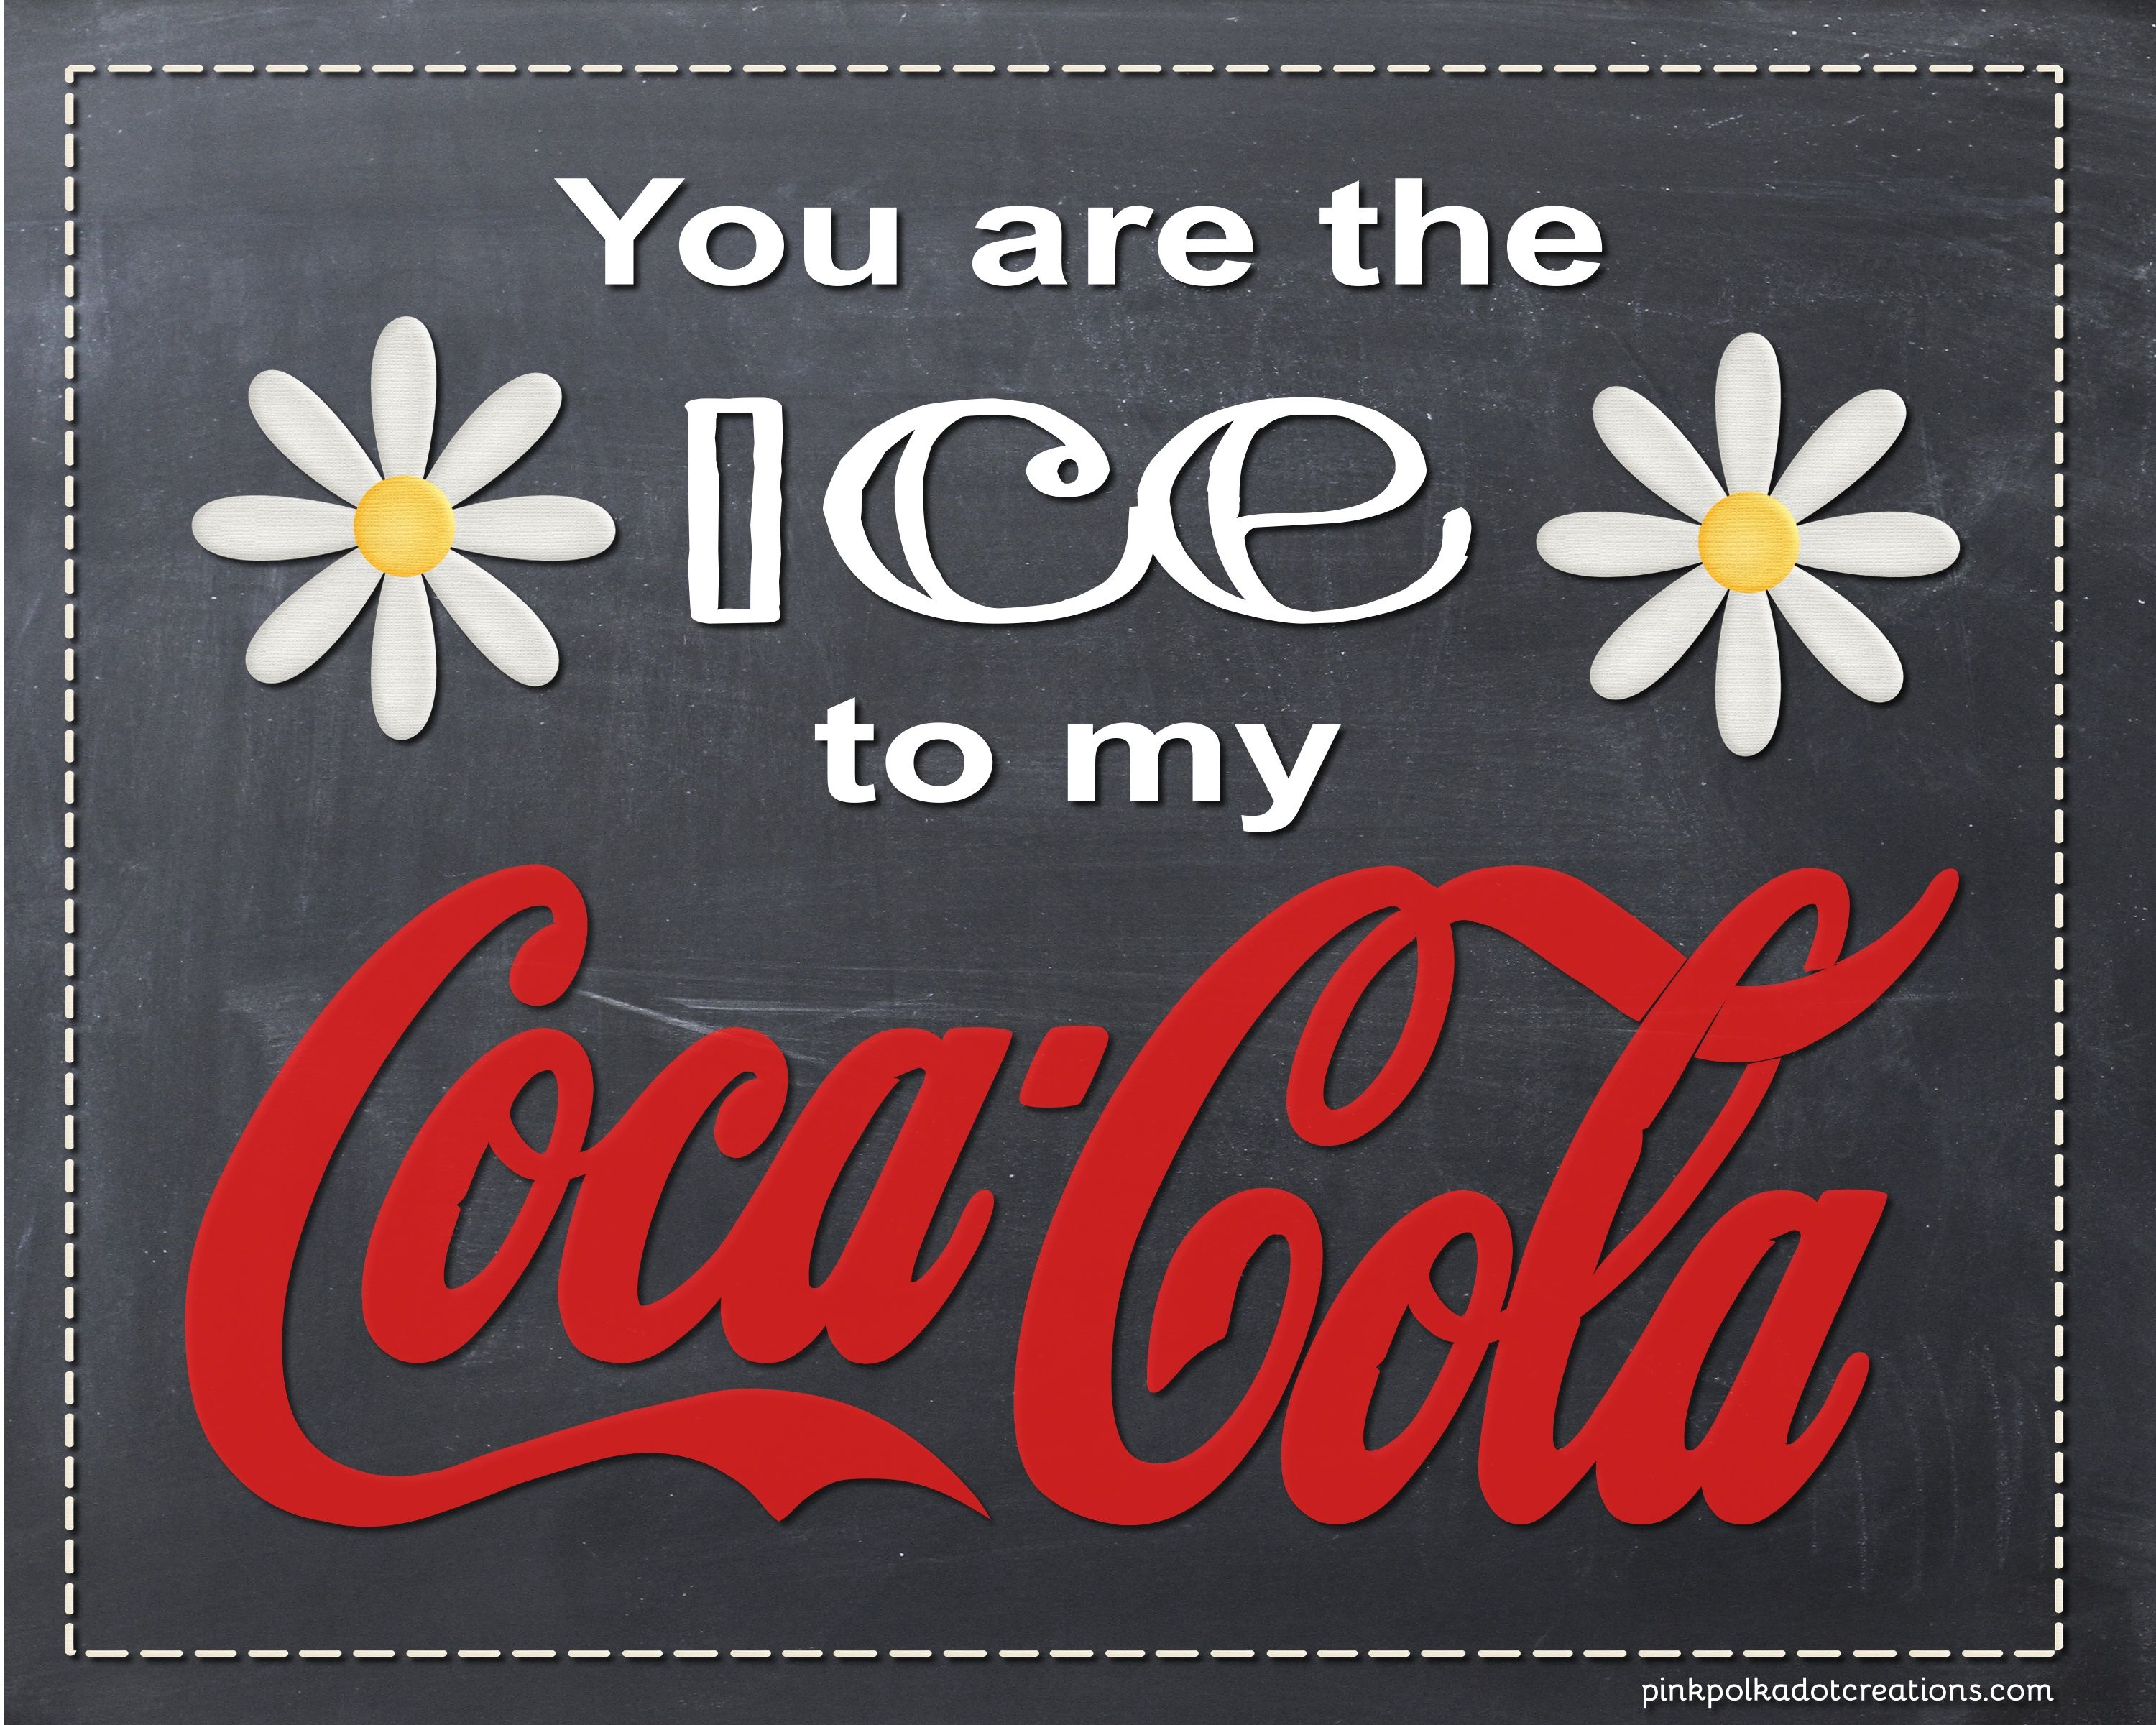 Thursday S Thought You Are The Ice